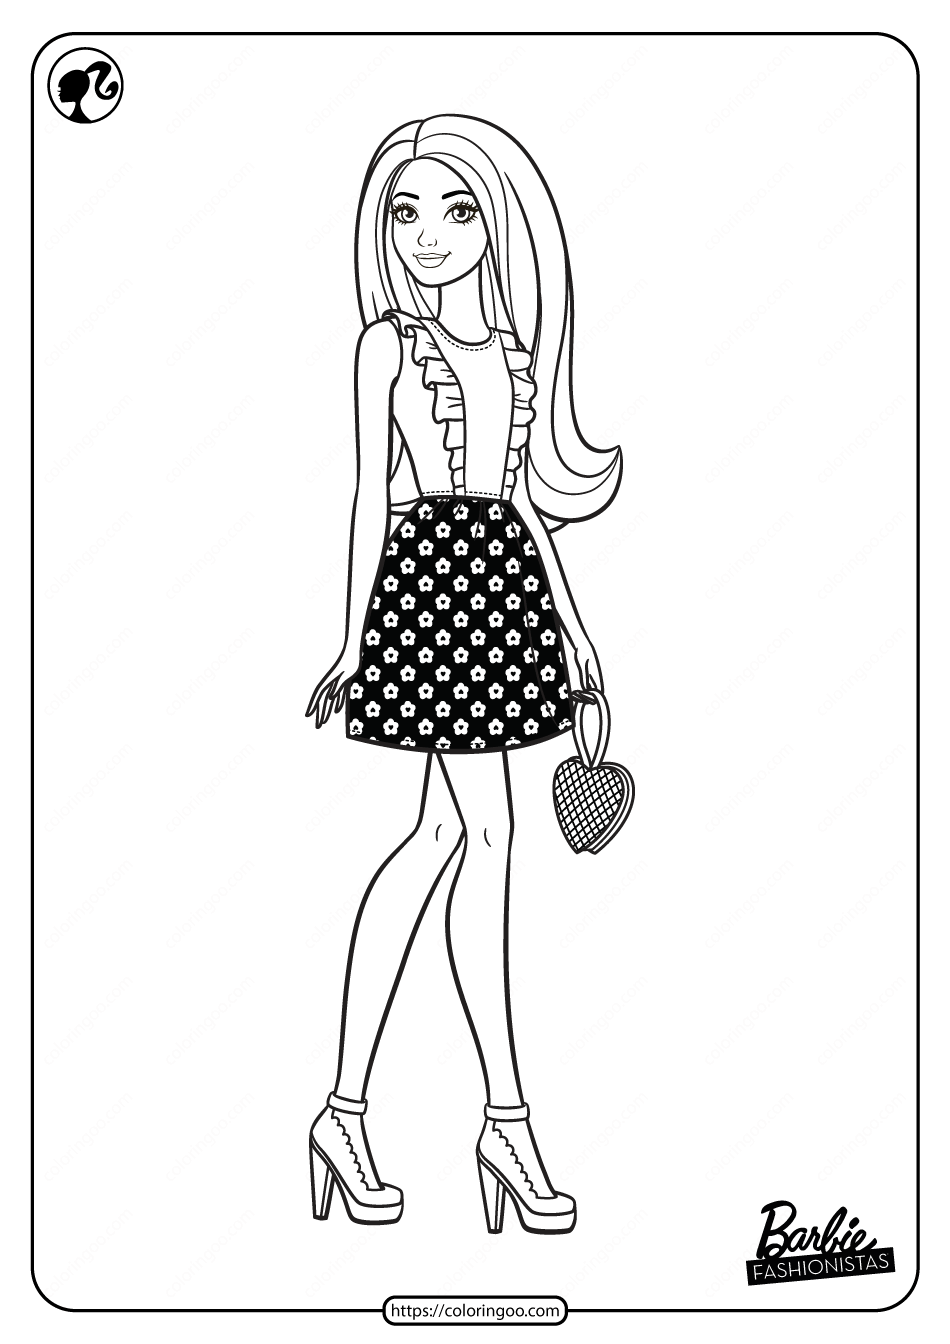 Printable Barbie Fashionistas Pdf Coloring Pages 02